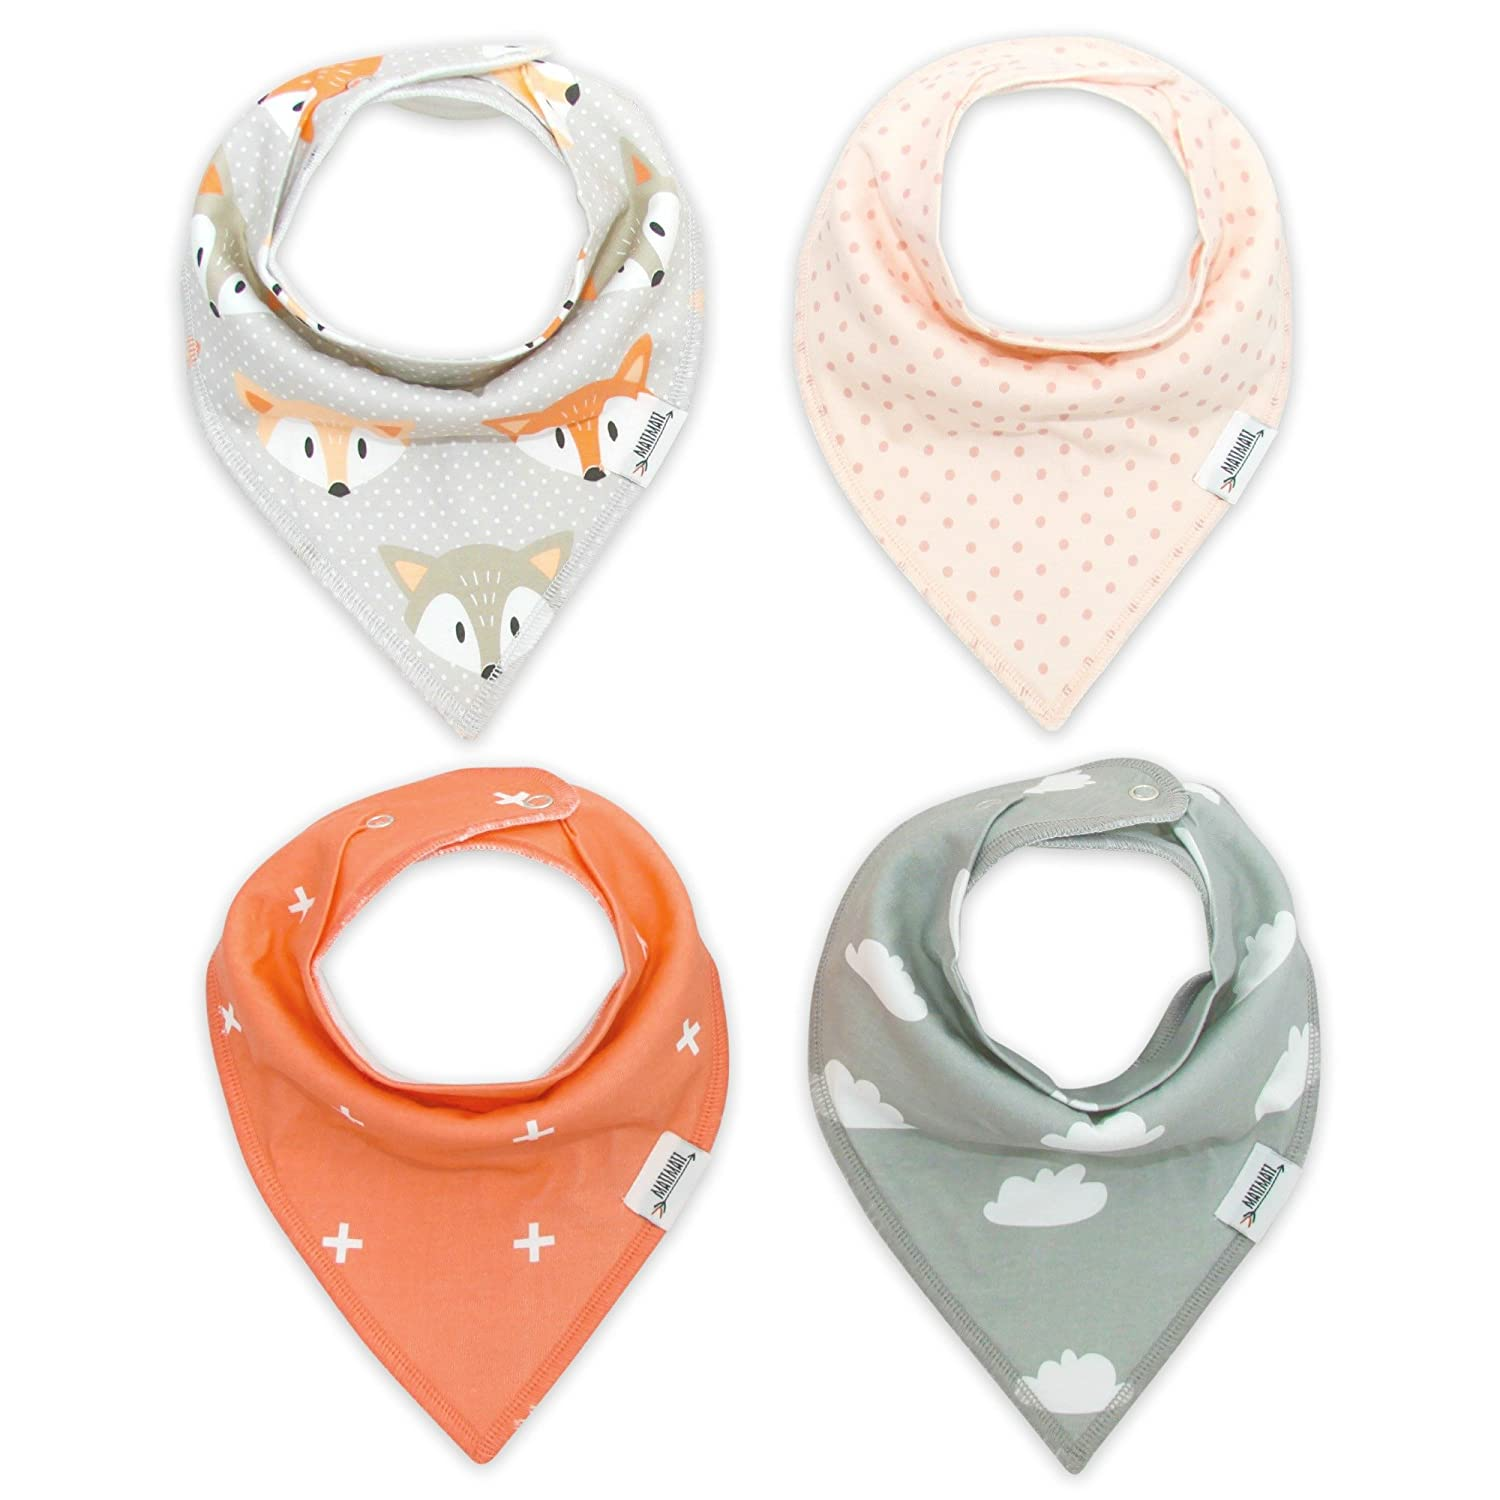 Amazon.com : Baby Bandana Drool Bibs with Snaps for Girls, 4-Pack ...